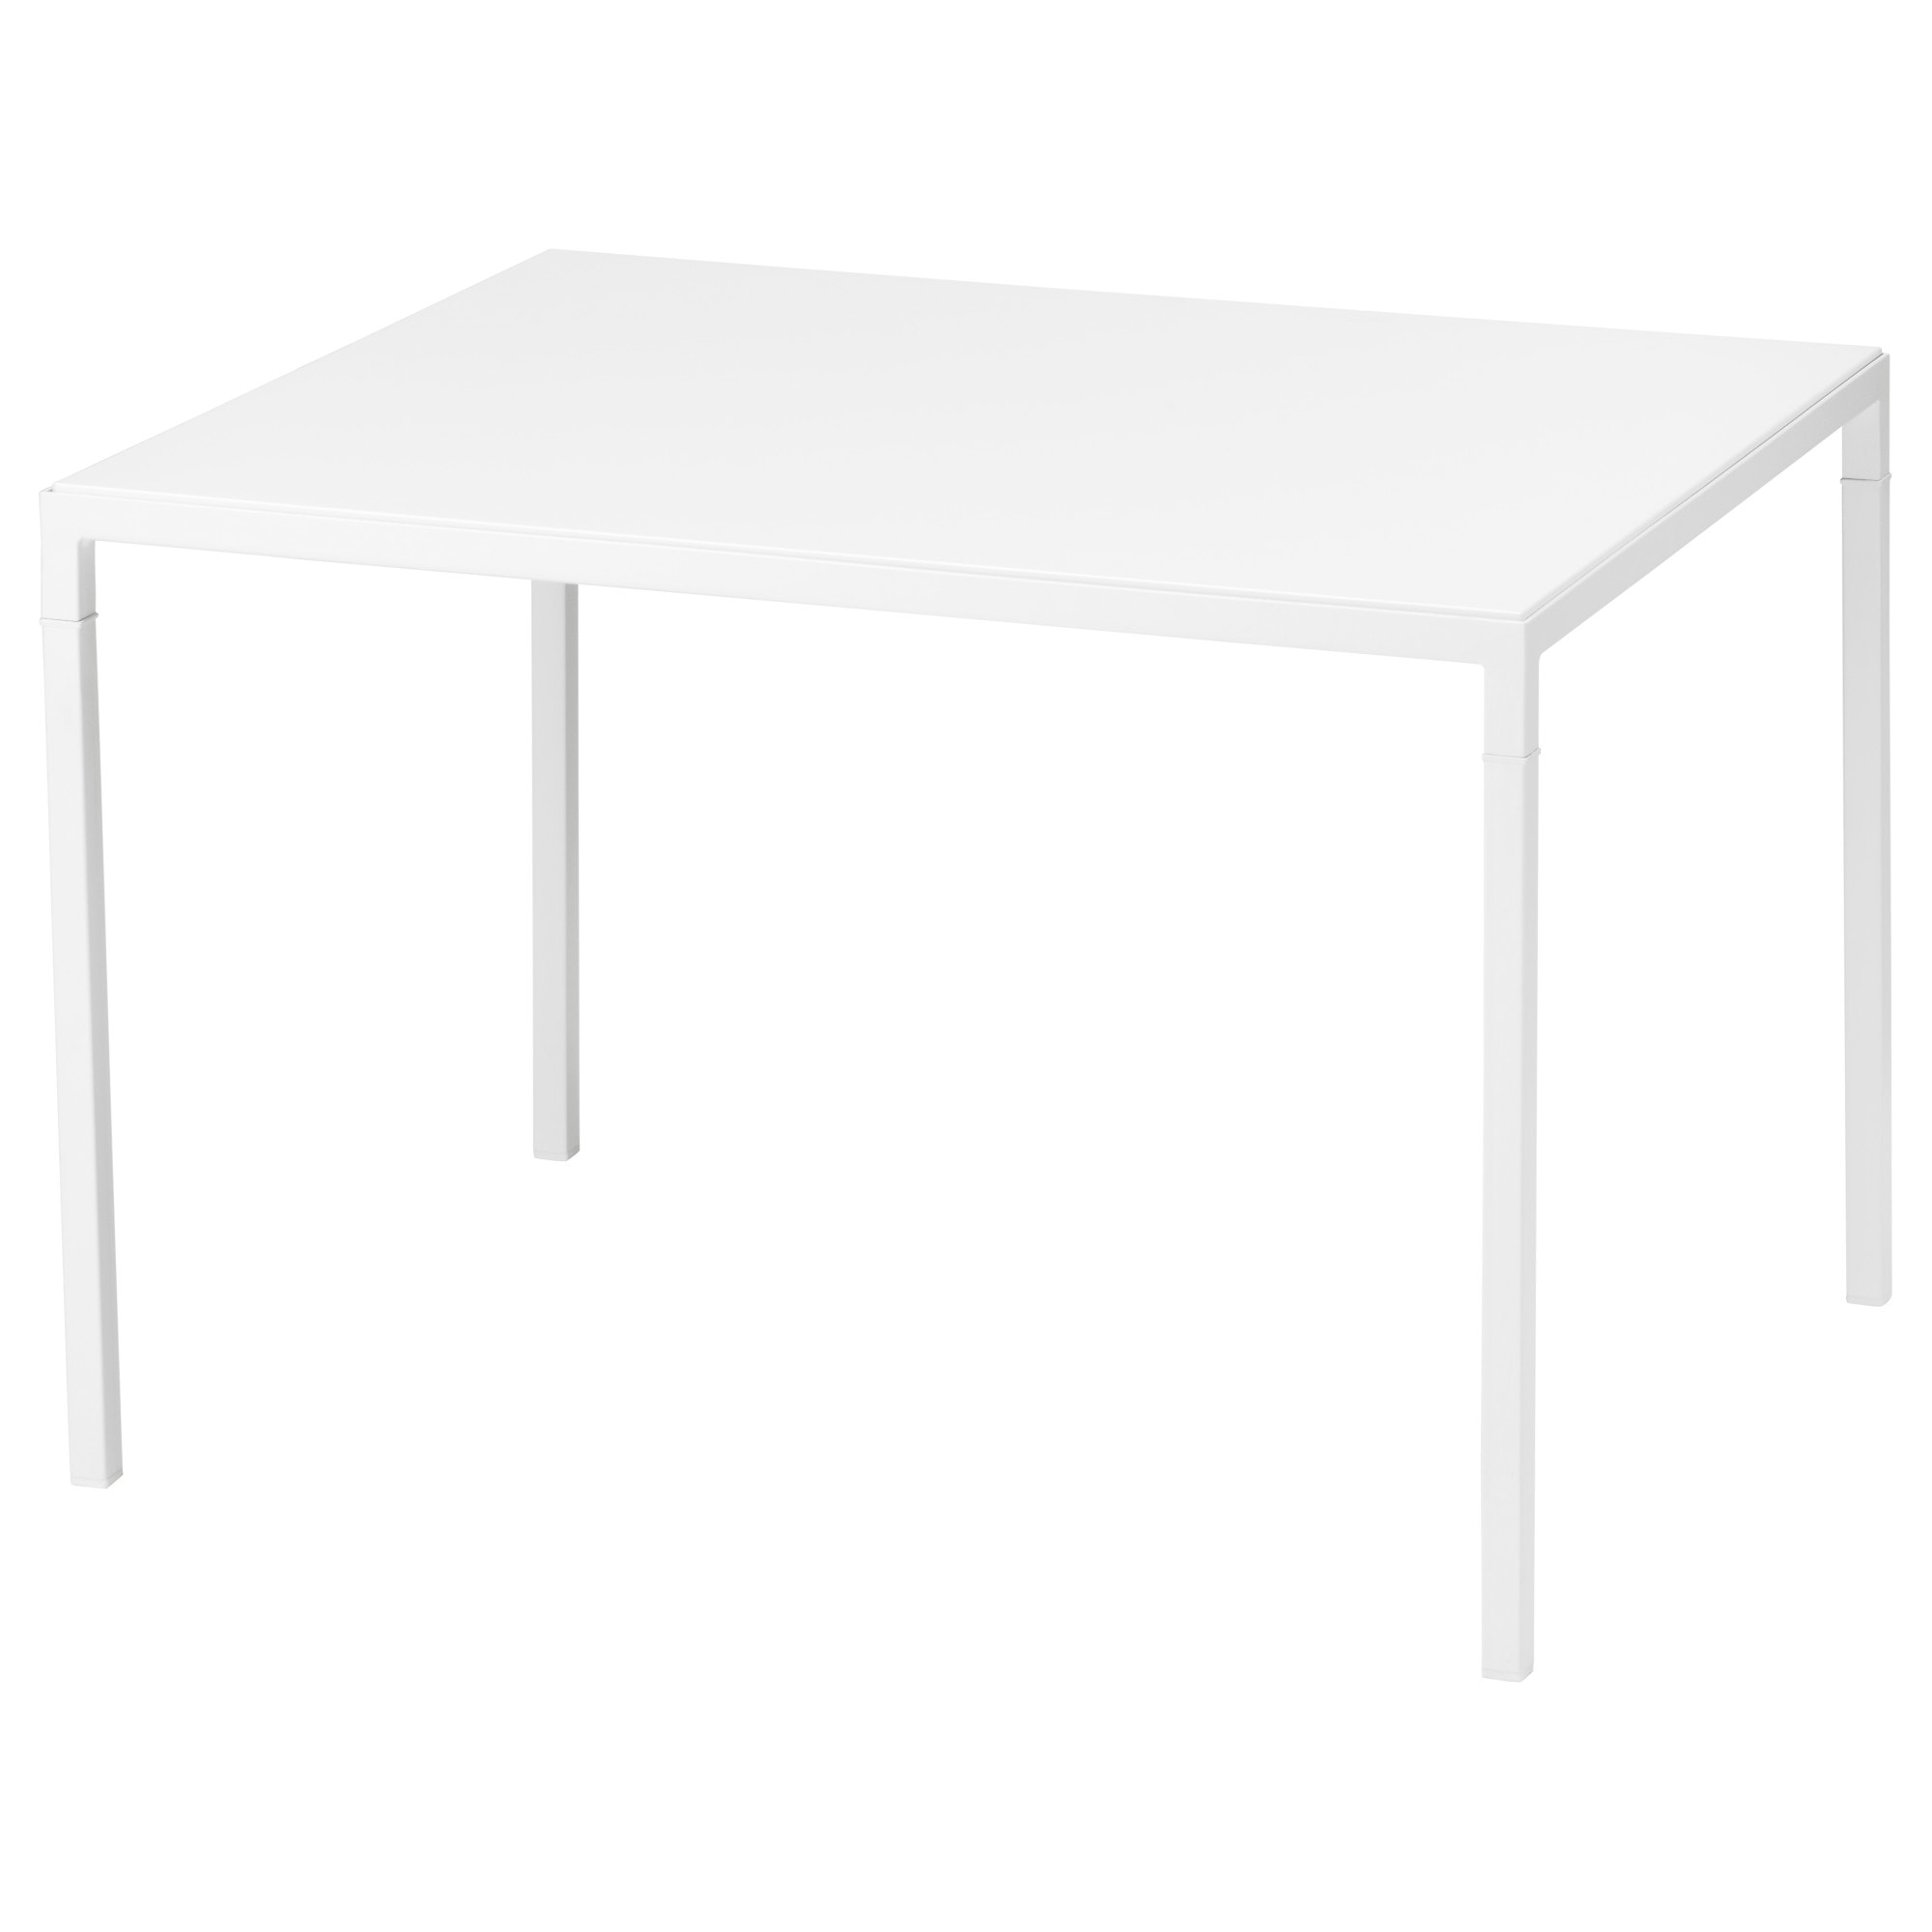 NYBODA Coffee Table W Reversible Table Top, White/gray Length: 29 1/